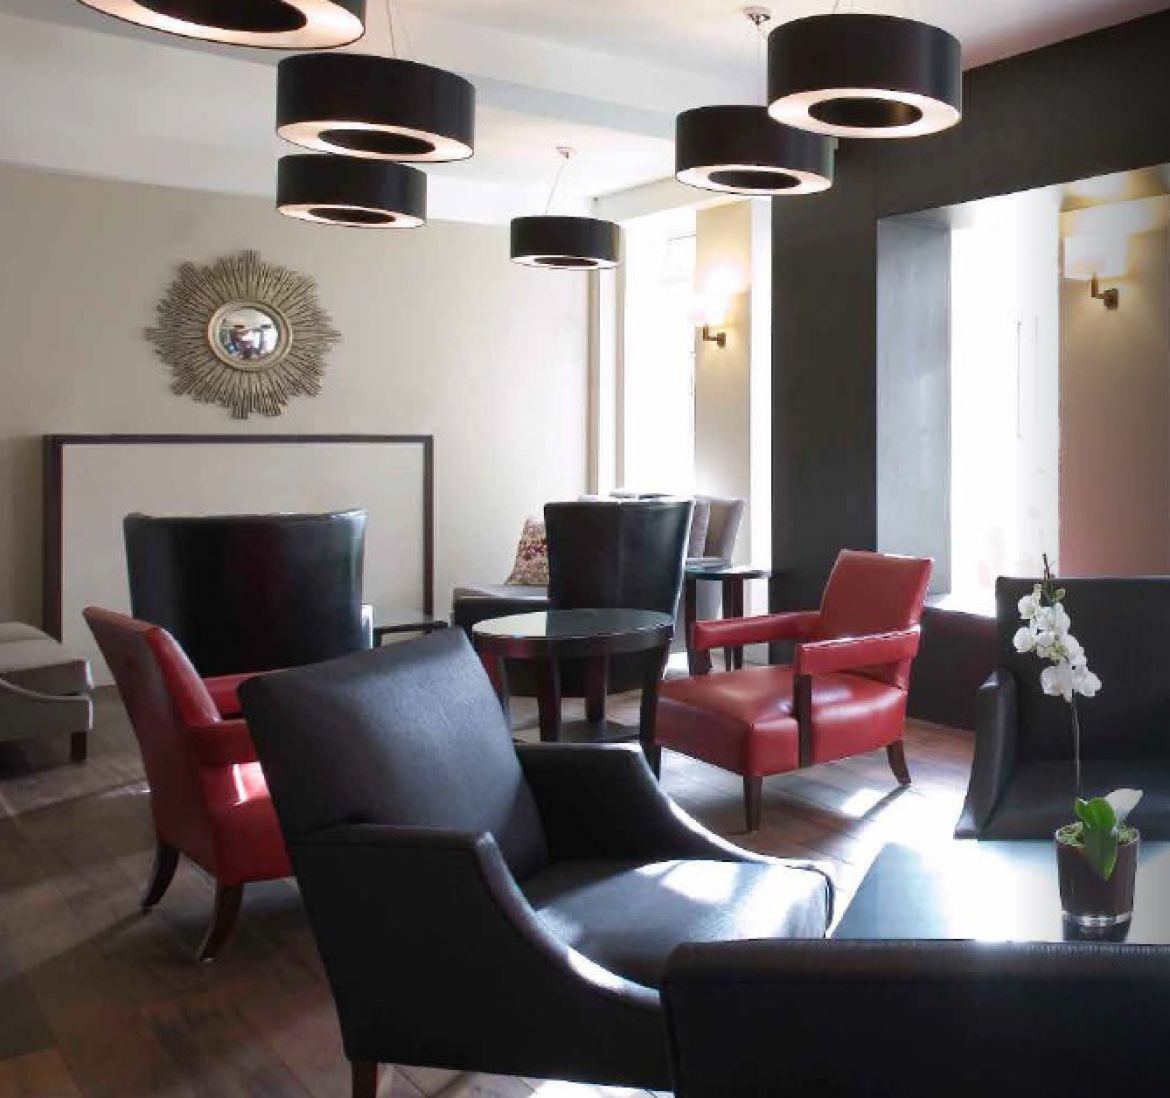 Serviced-Apartments-Westminster-|-Accommodation-Near-Buckingham-Palace-|-Pool,-Spa,-Gym,-Sauna,-24h-Reception-|Award-Winning-&-Quality-Accredited-|-BOOK-NOW